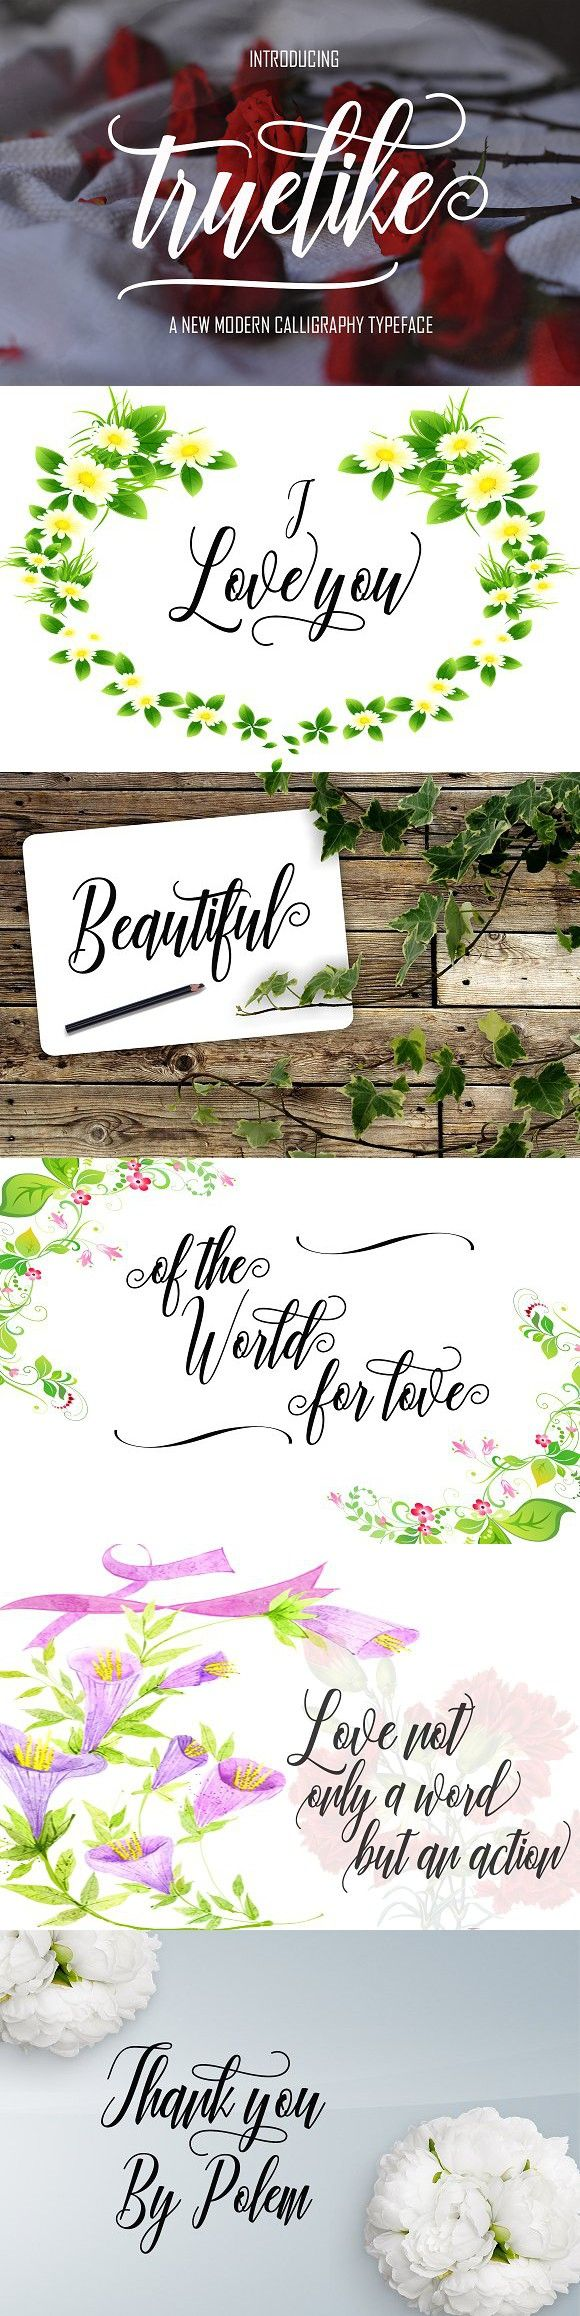 cursive fonts for wedding cards%0A Take a look at Truelike Free Script Typeface  This is an ideal typeface for  highend logotypes and magazine headlines  greeting cards  invitations   posters